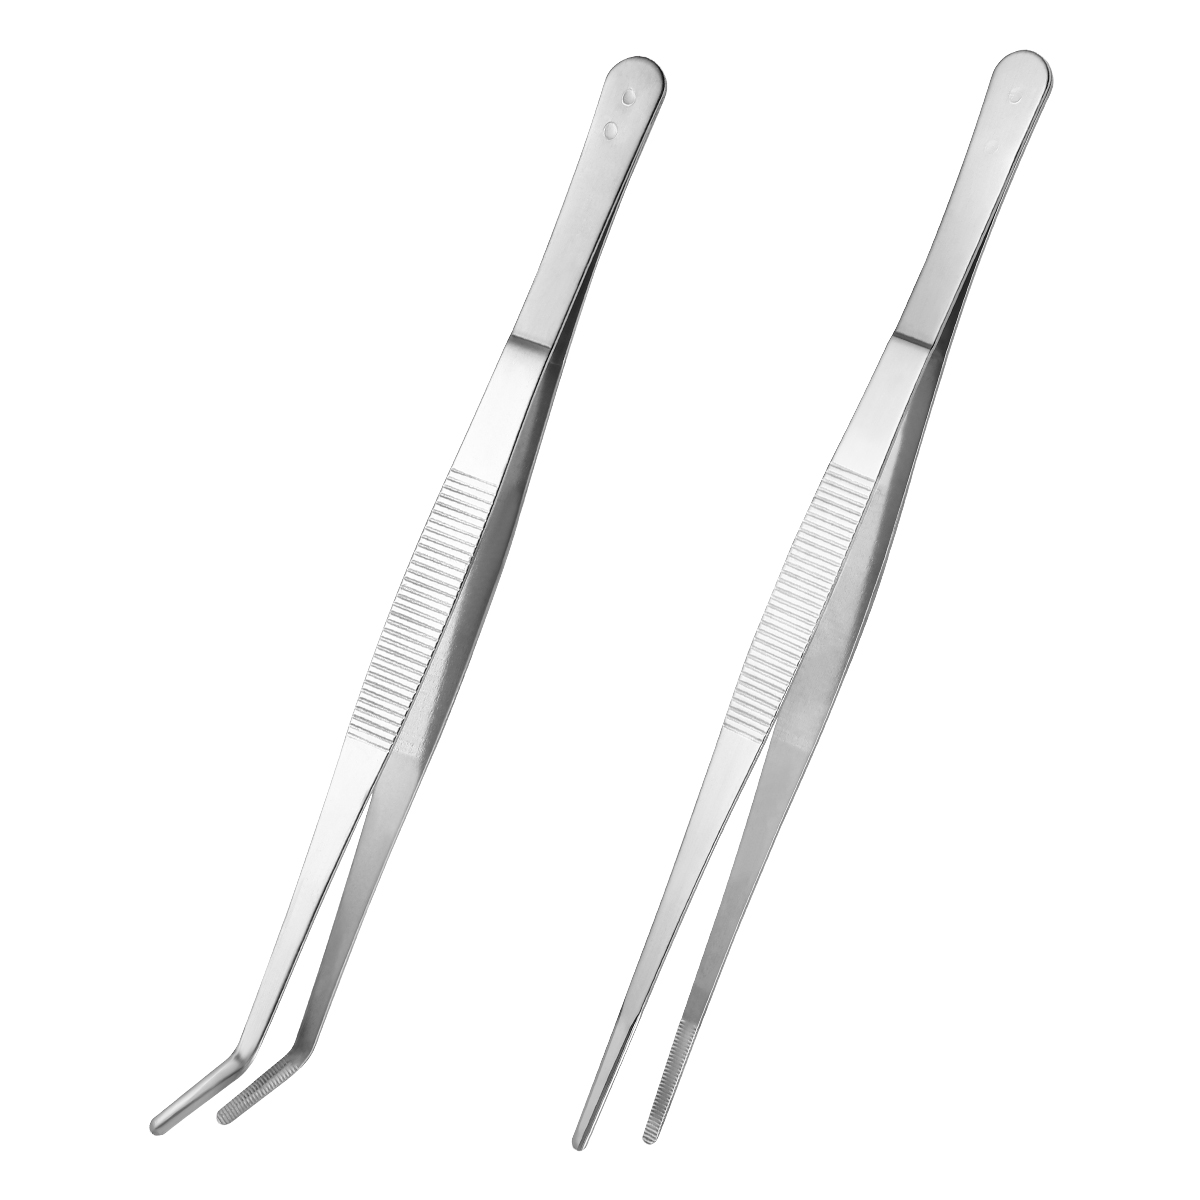 2PCS Stainless Steel Safe Smooth Straight Tweezers Feeding Tongs Curved Nippers Medical Tools For Lizards Reptile Spider